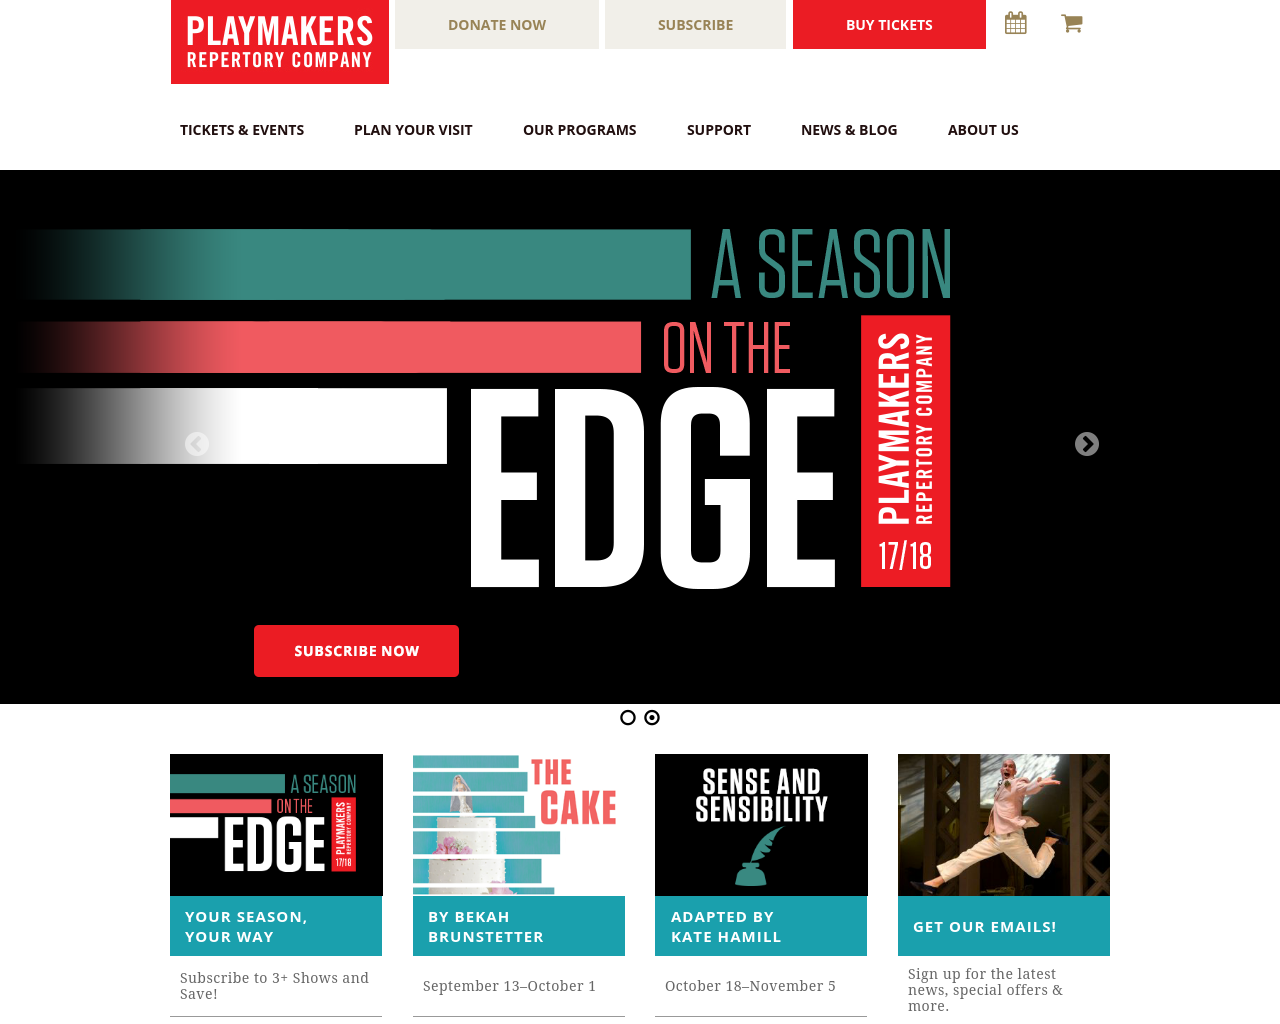 PlayMakers-Repertory-Company-Advertising-Reviews-Pricing